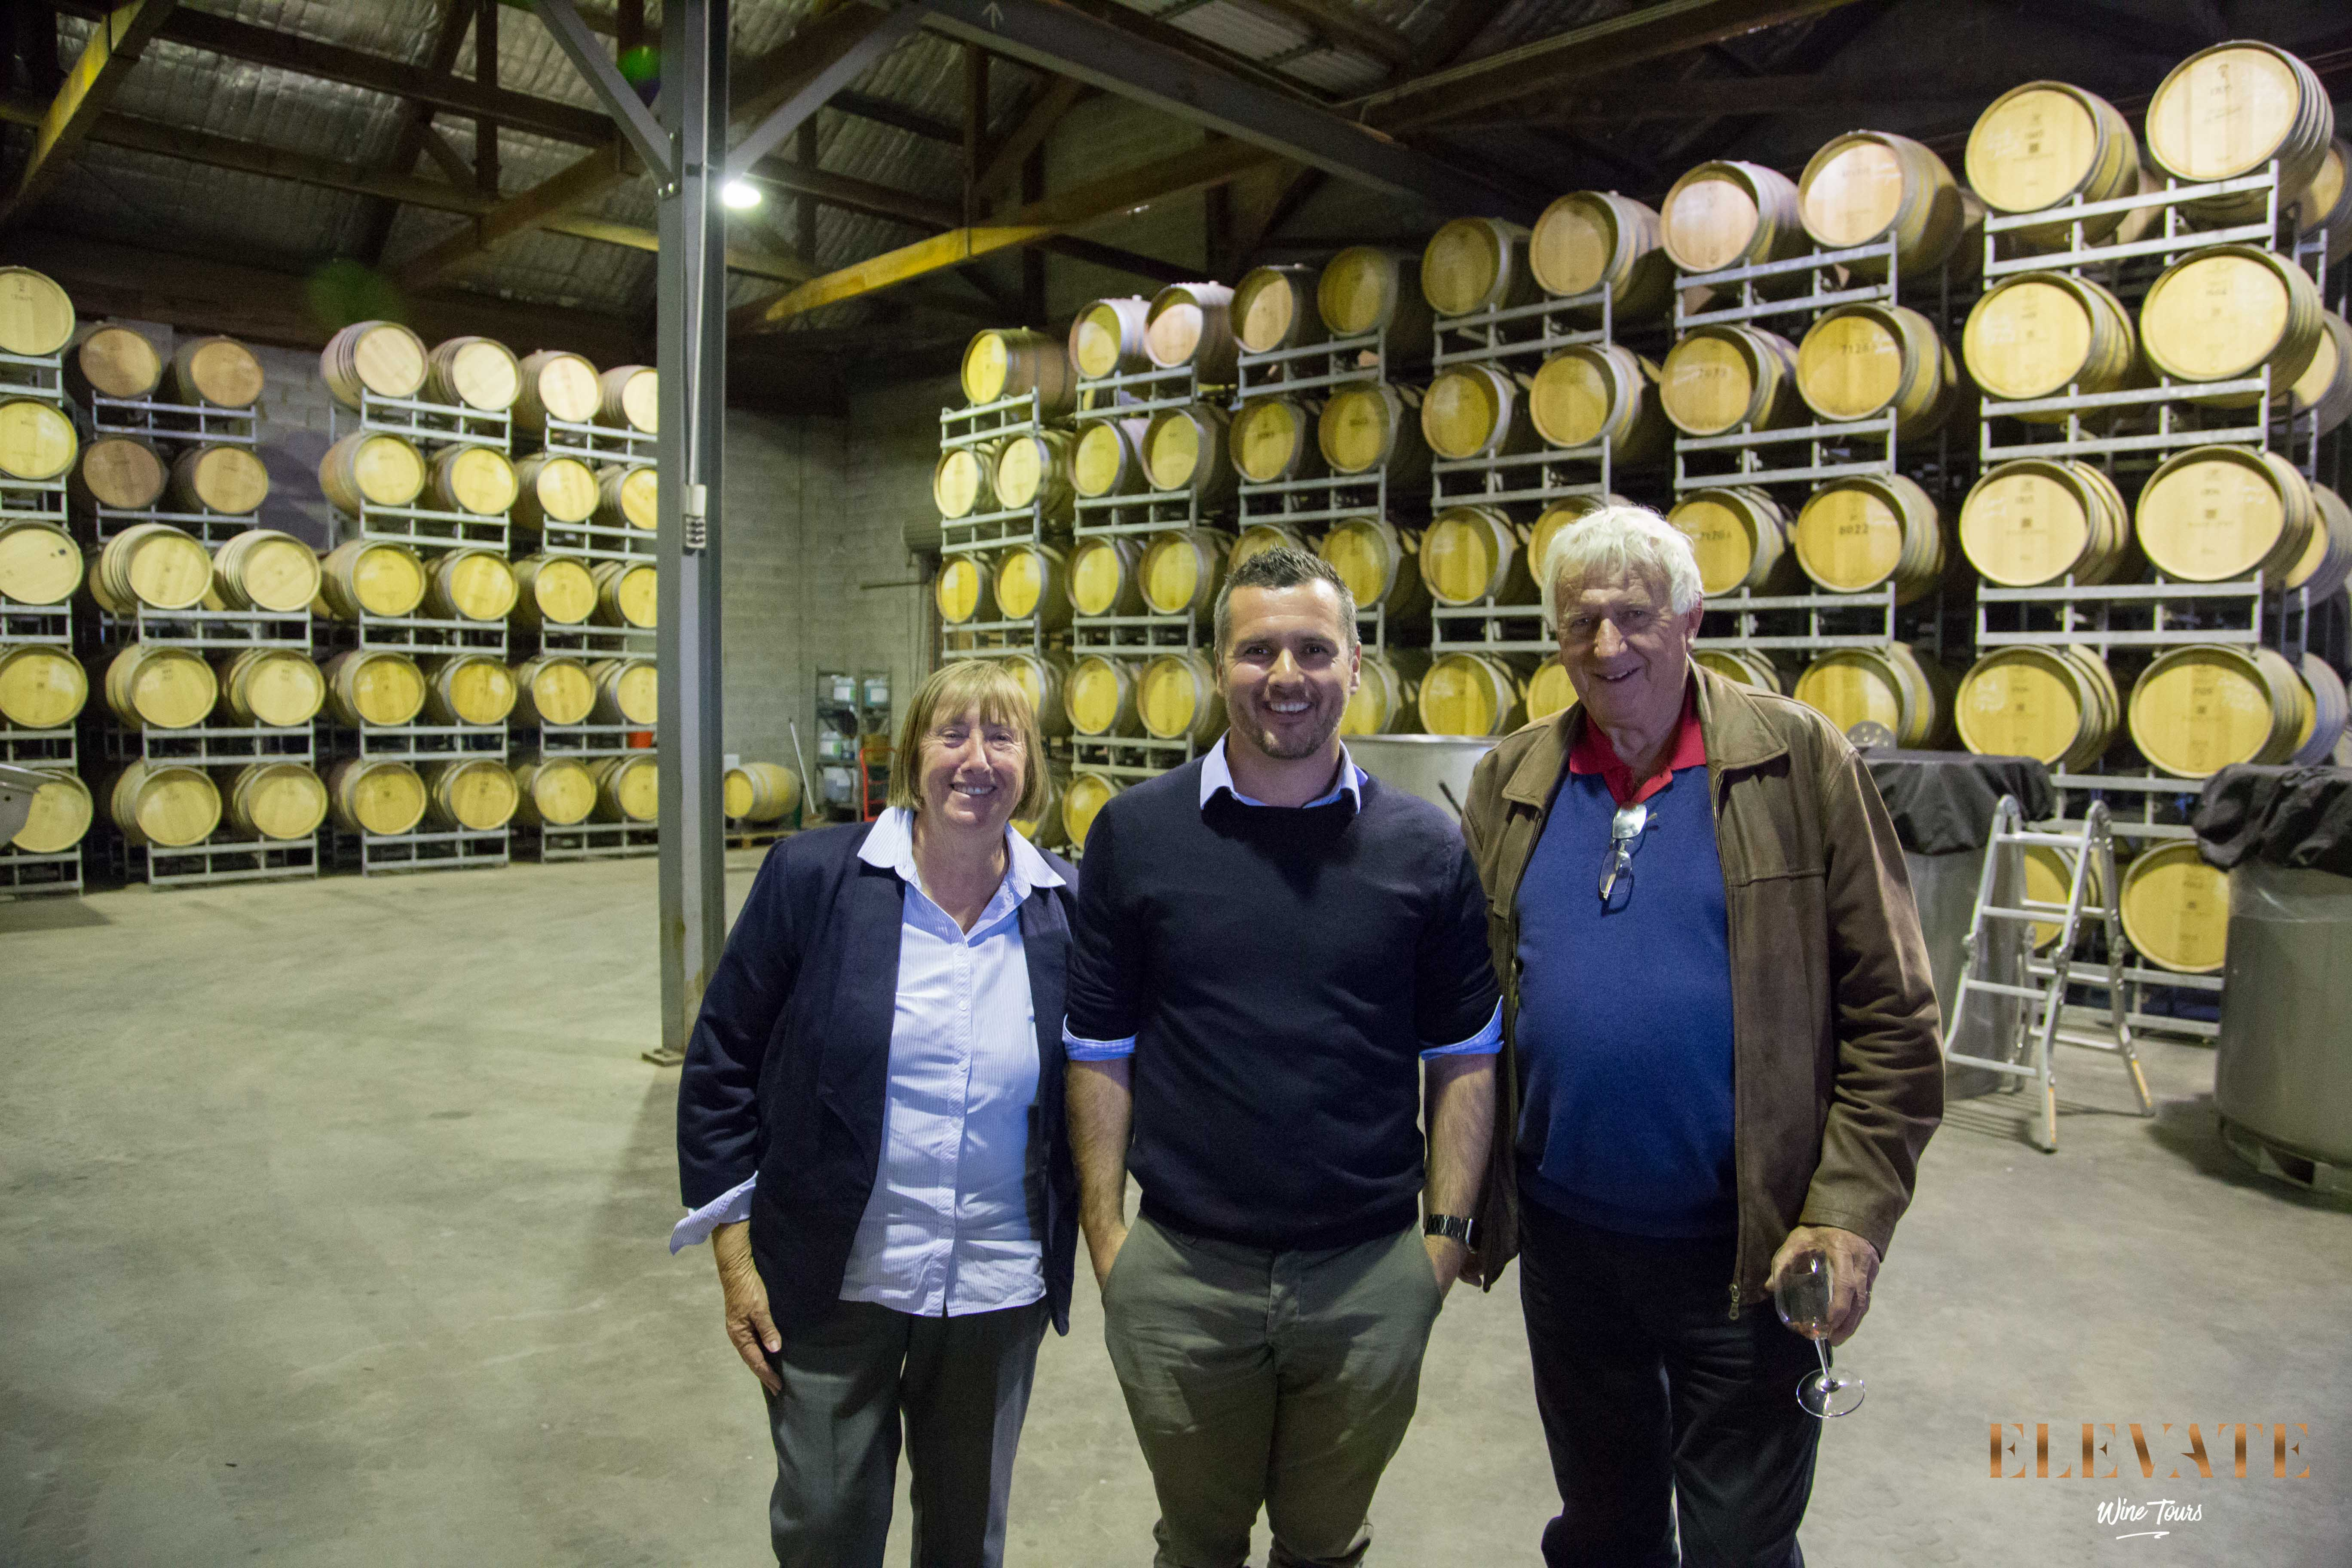 ELEVATE-WINE-TOURS-RARE-HARE-CELLAR-DOOR